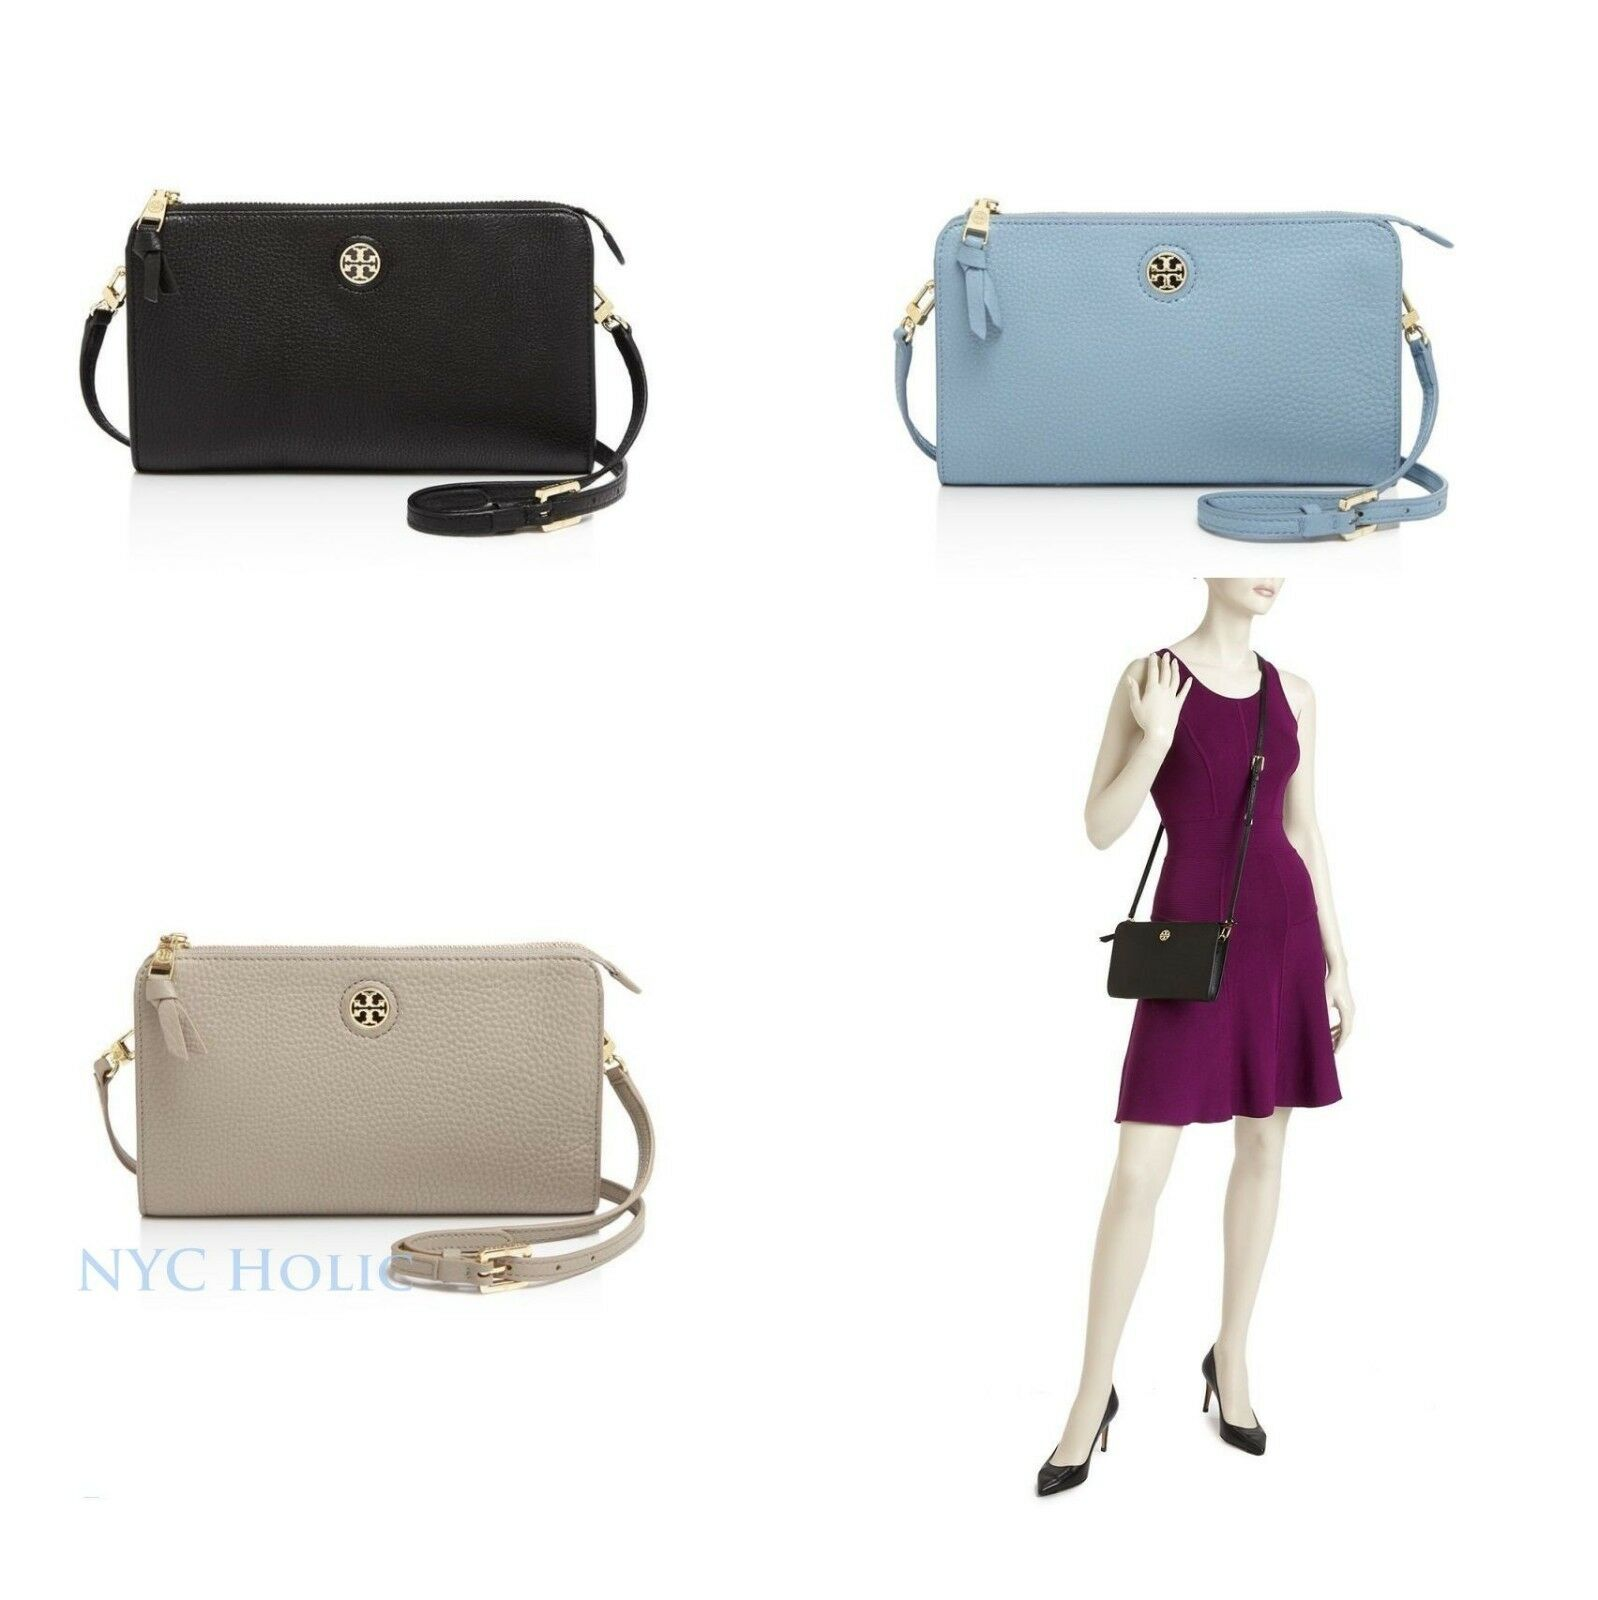 4c9bc8134e6 Details about New Tory Burch Brody Pebbled Wallet Crossbody Clutch